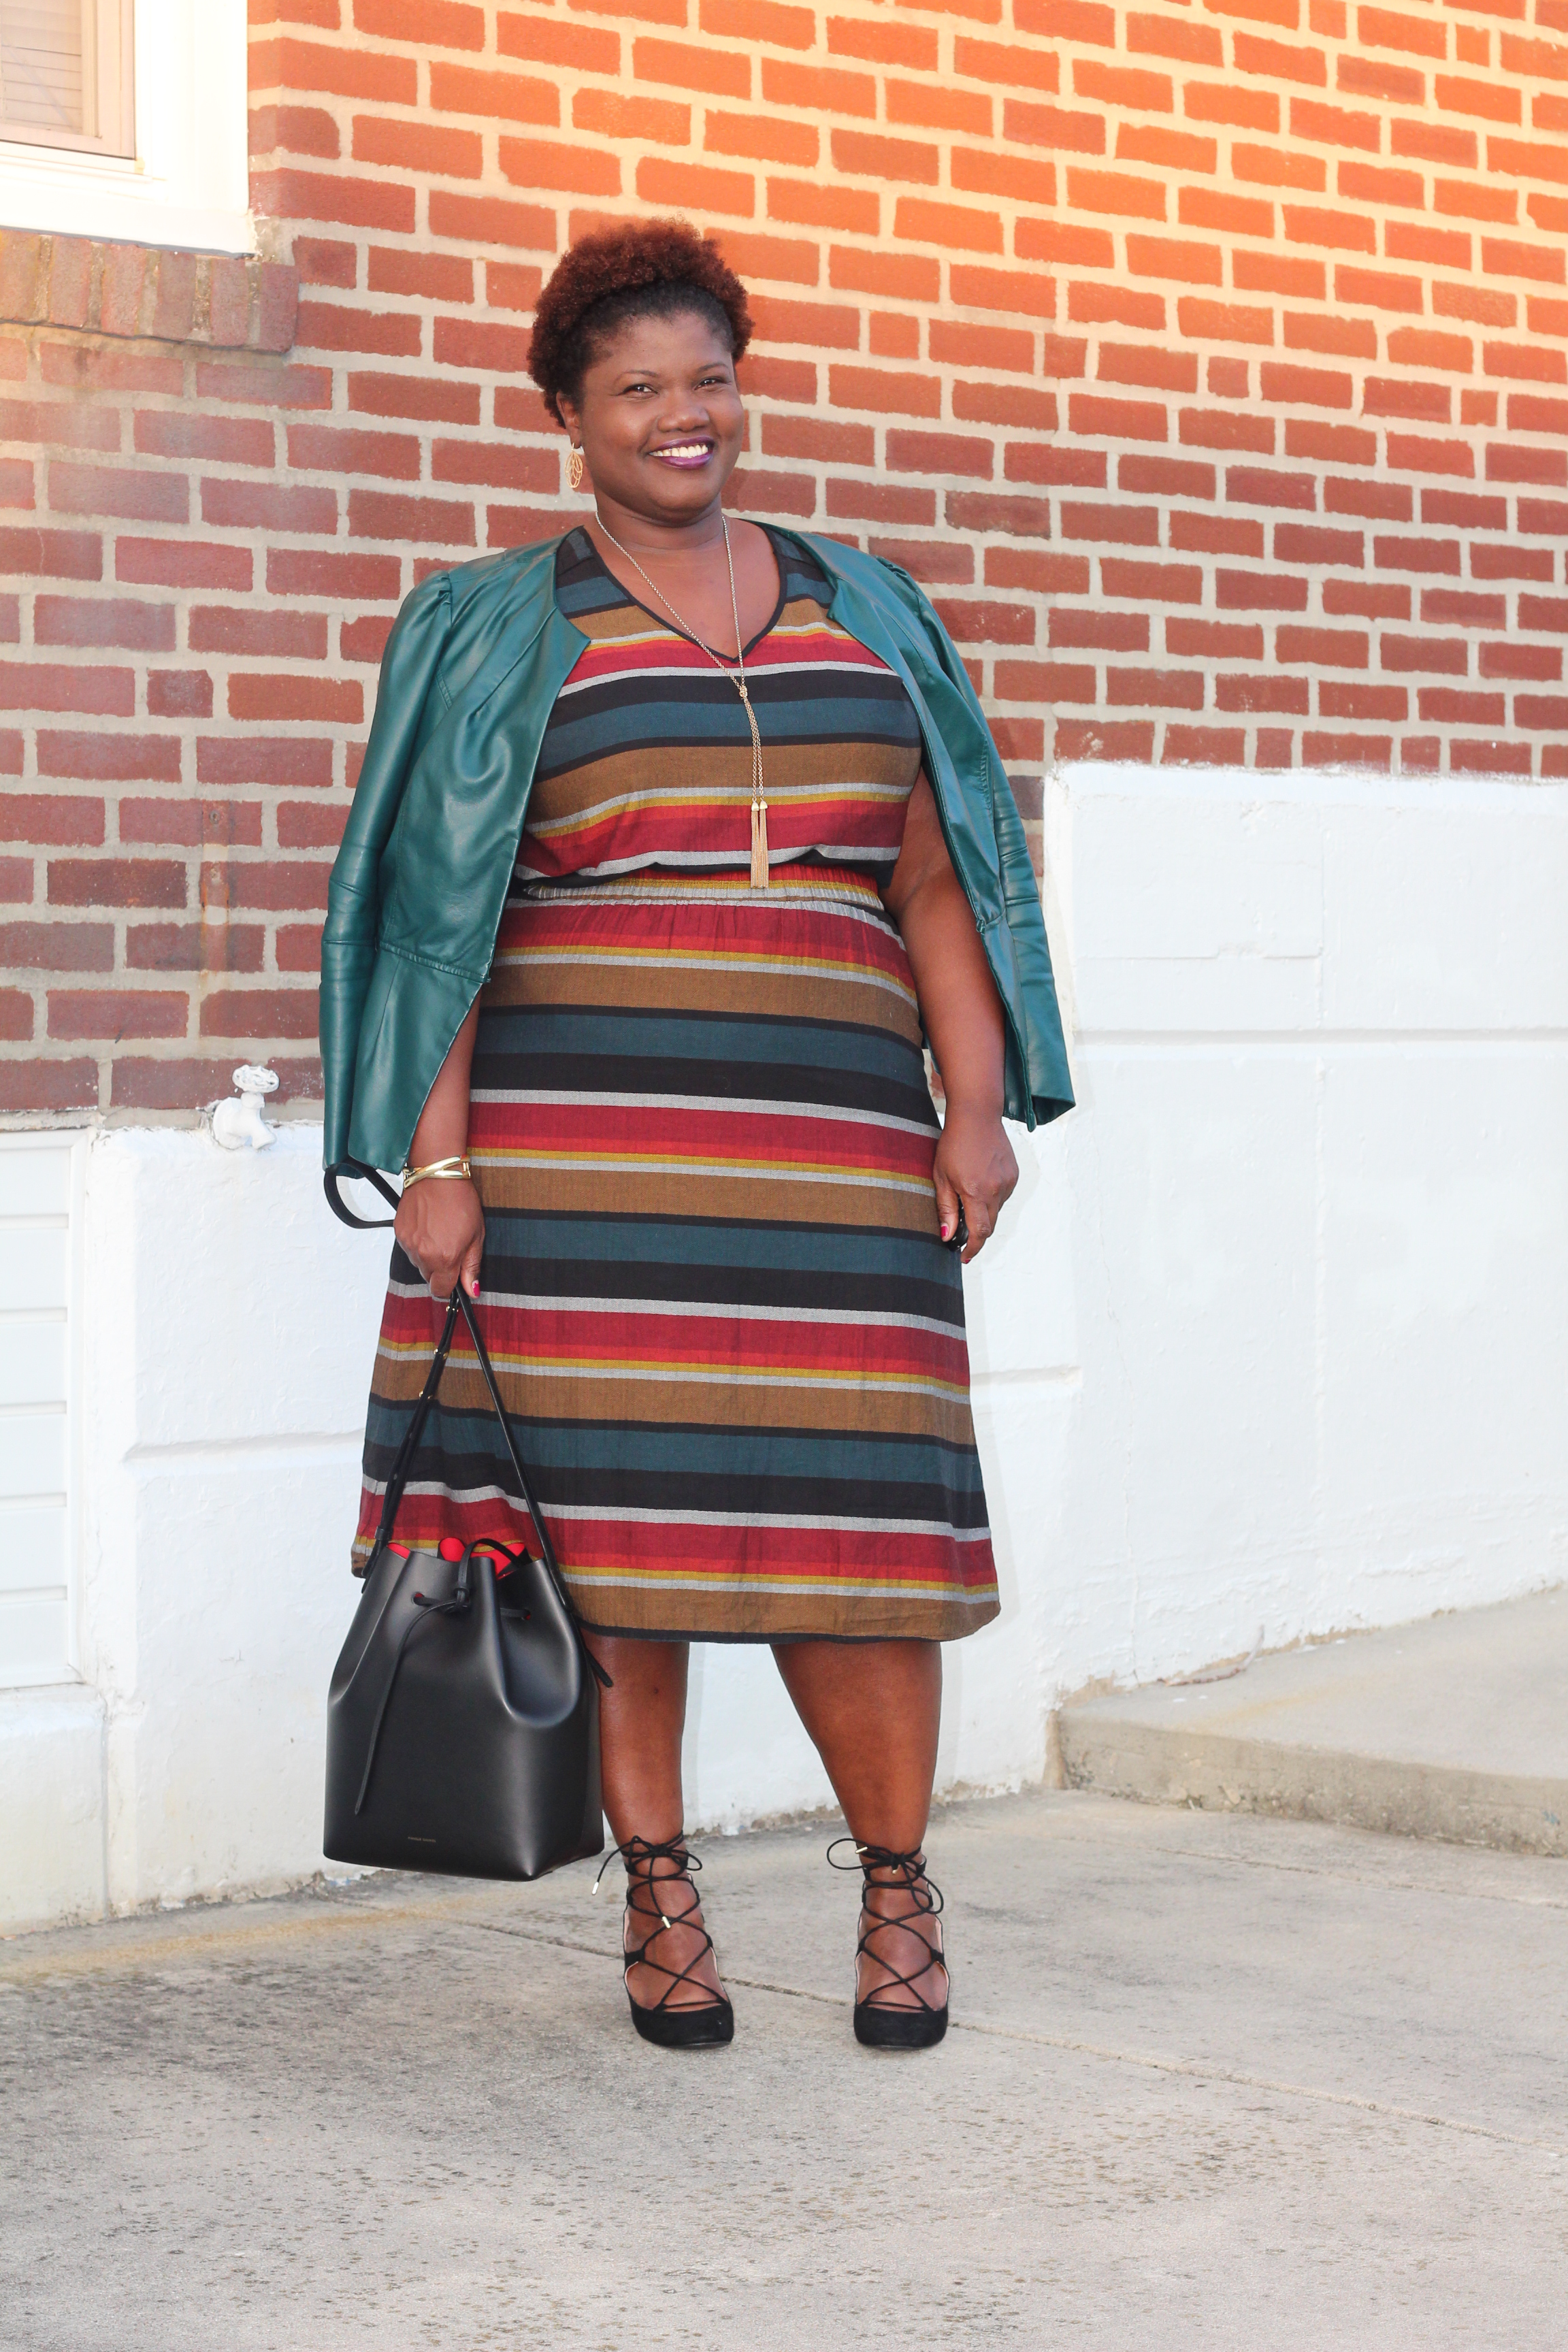 curvy women, curvy, curvy girls, stripes, fall colors, fall, midi skirts, stripe midi skirts, midi skirts for plus size women, plus size midi skirts, faux leather, lace up heels, mansur graviel, bucket bags, natural hair, plus size fashion, plus size fashion blog, plus size fashion bloggers, grown and curvy woman blog, grown and curvy, black plus size bloggers, bloggers over 40, 40+ blogs, 40+ bloggers, blogs for women over 40